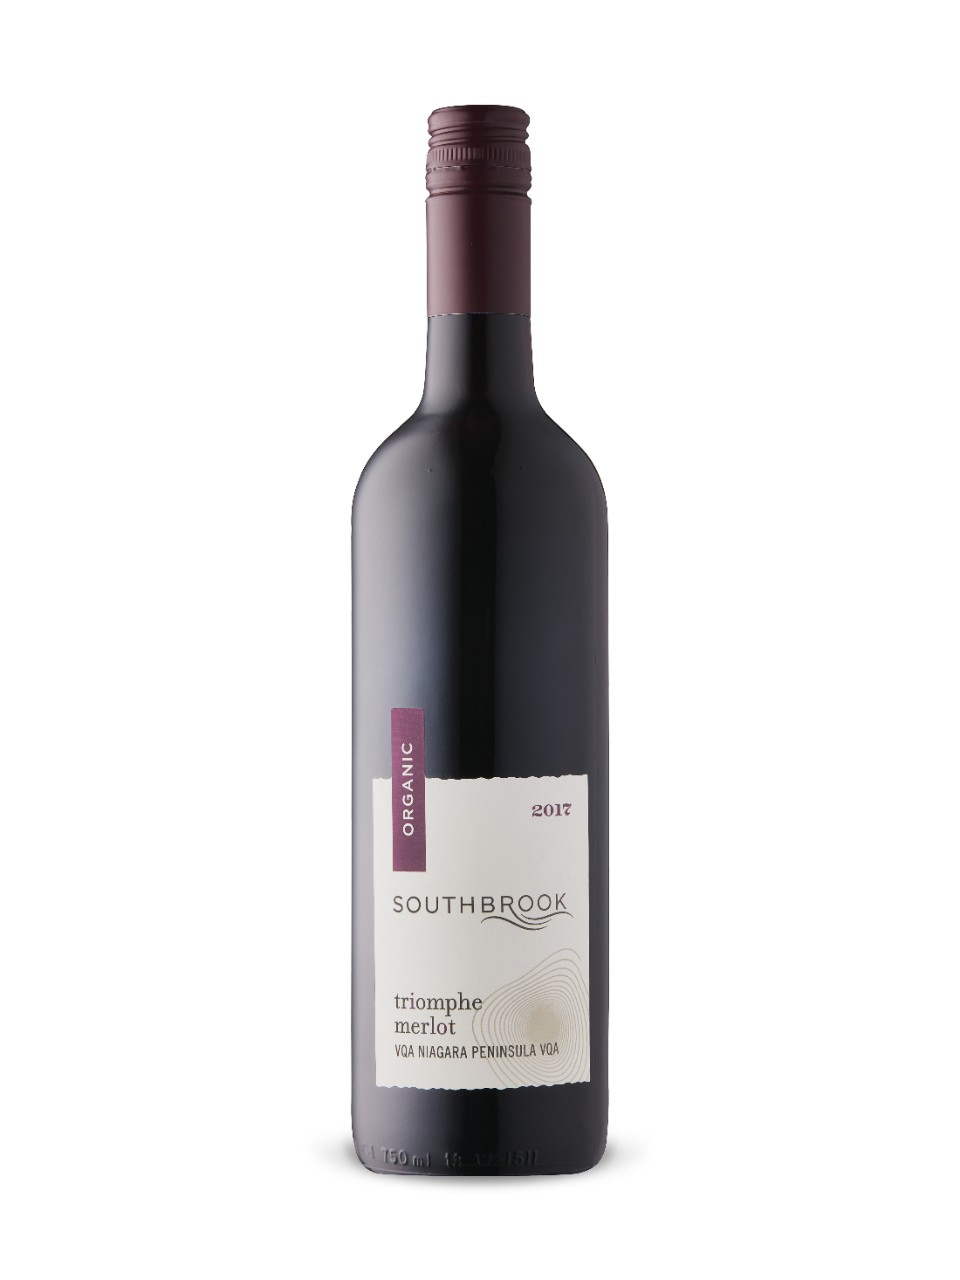 Southbrook Triomphe Merlot 2017 from LCBO